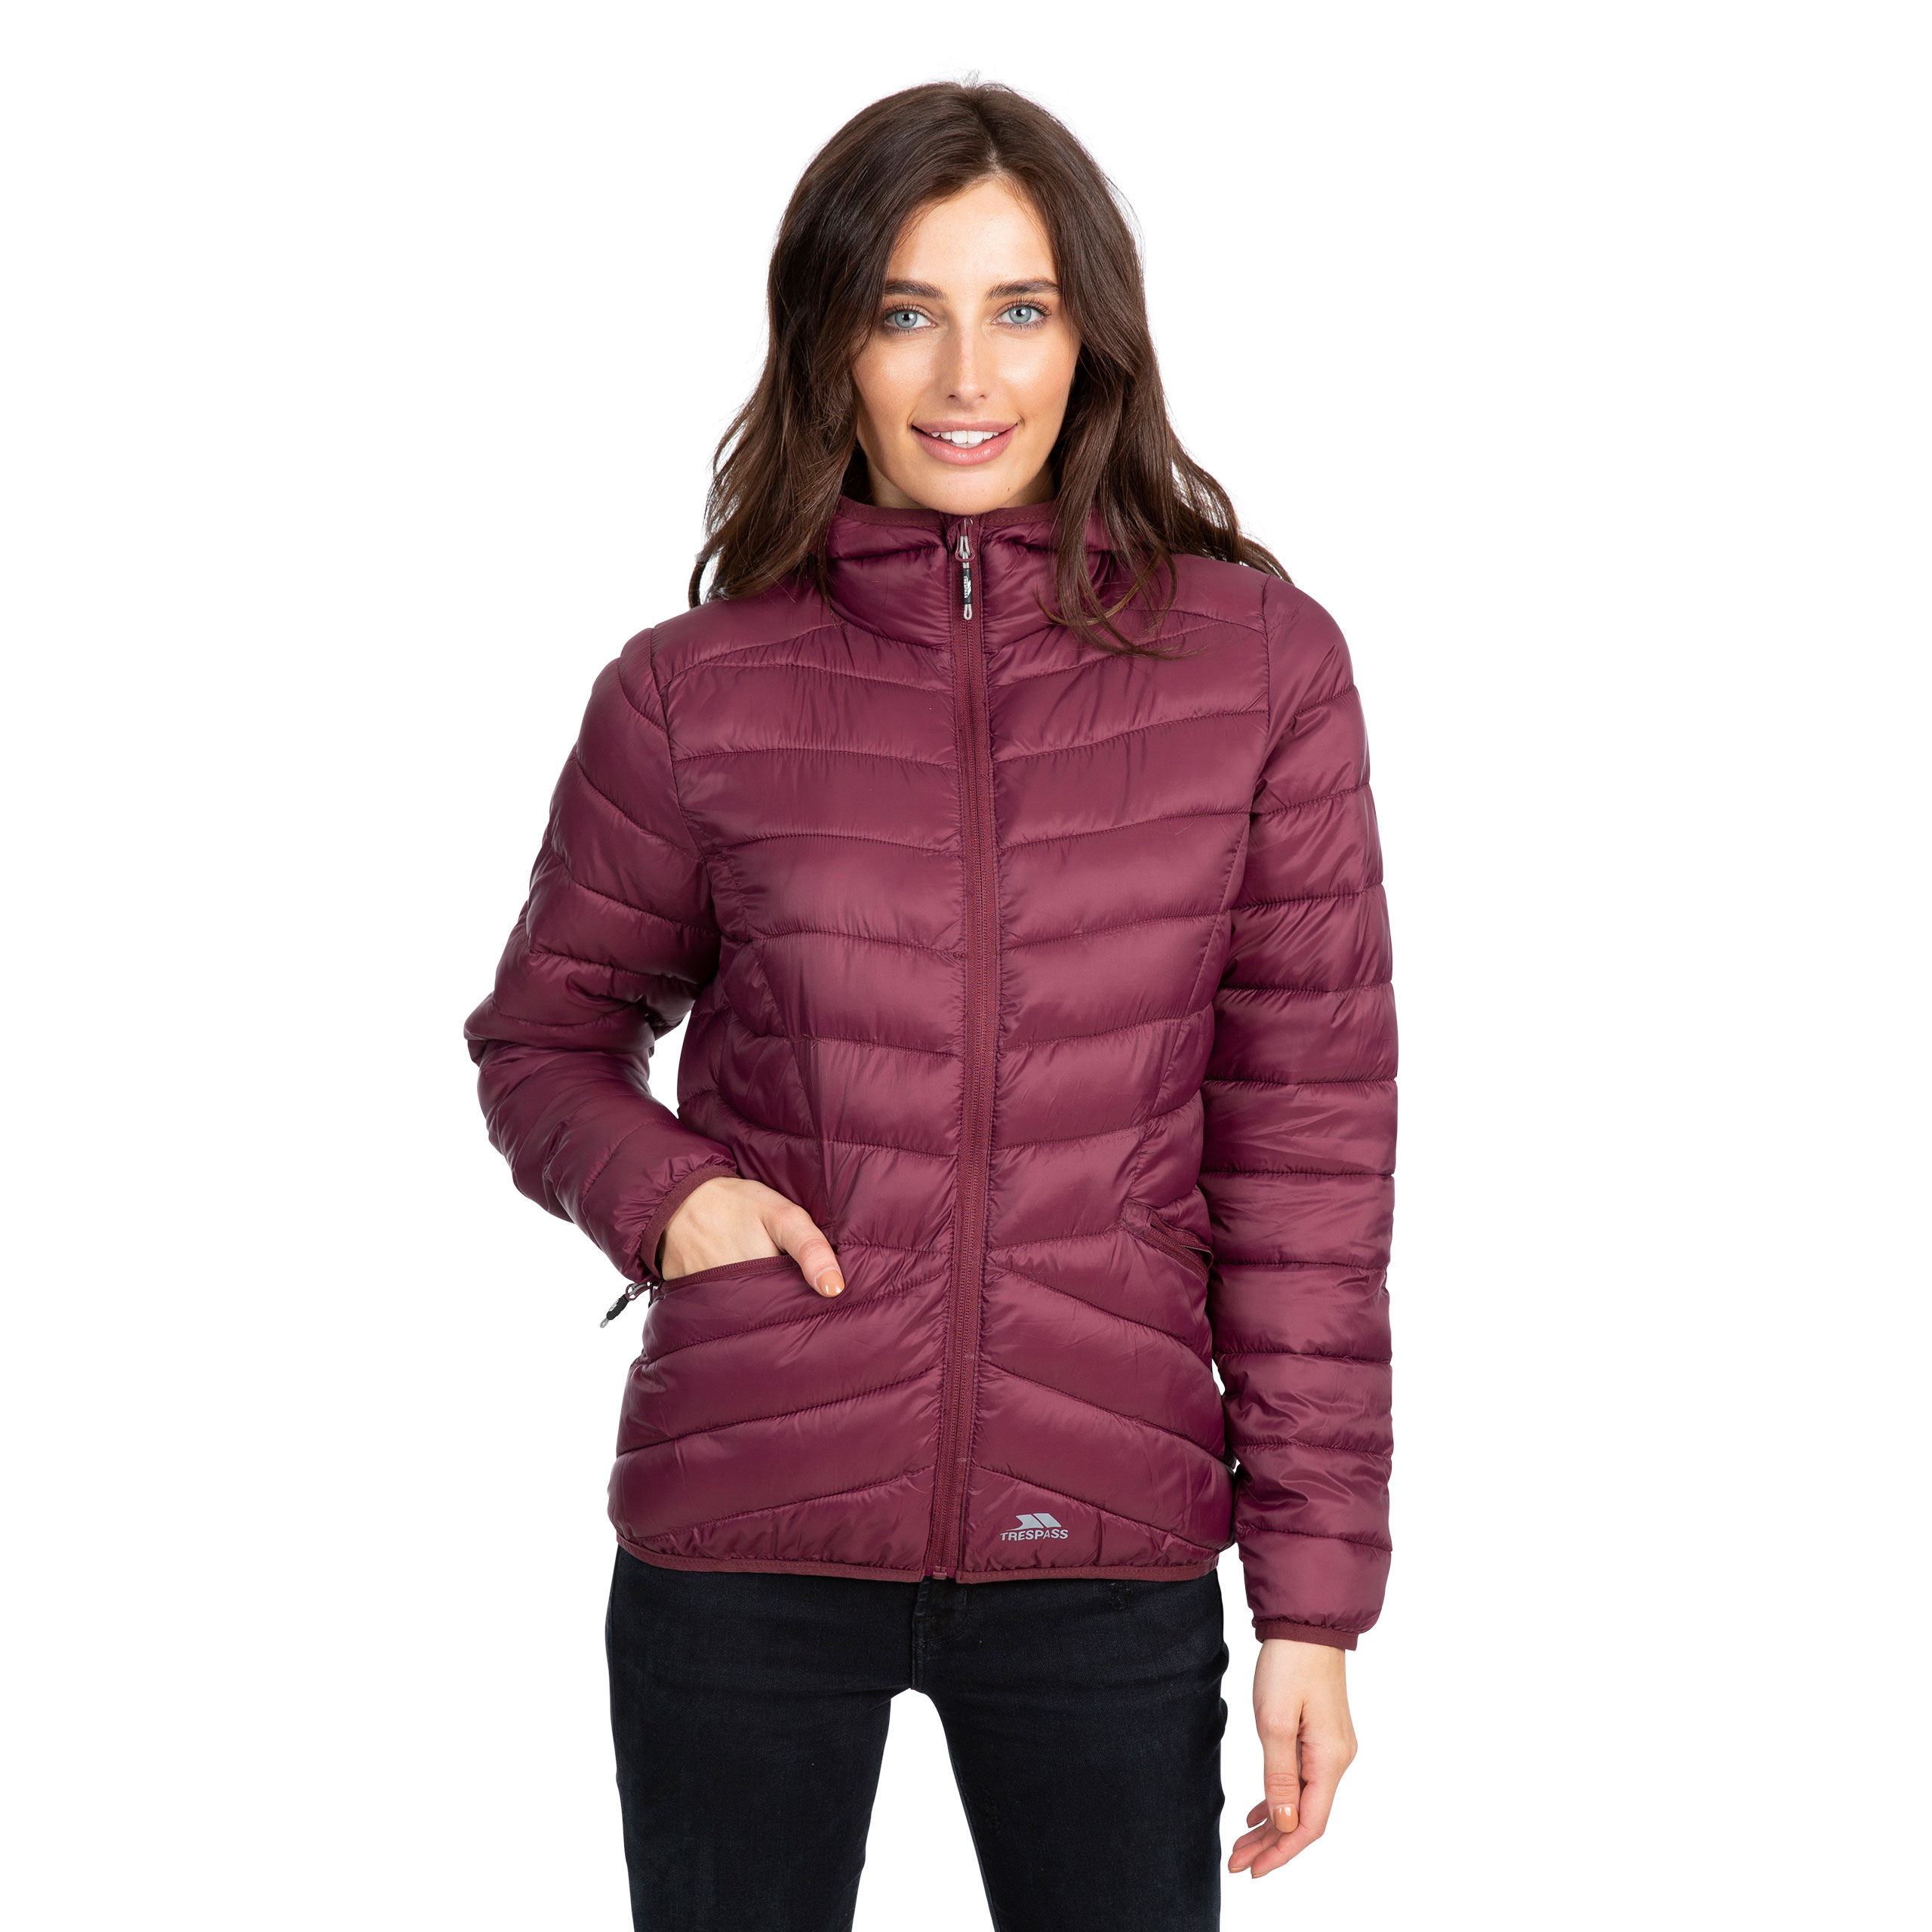 Trespass-Alyssa-Womens-Padded-Jacket-Puffer-With-Hood-For-Ladies thumbnail 19